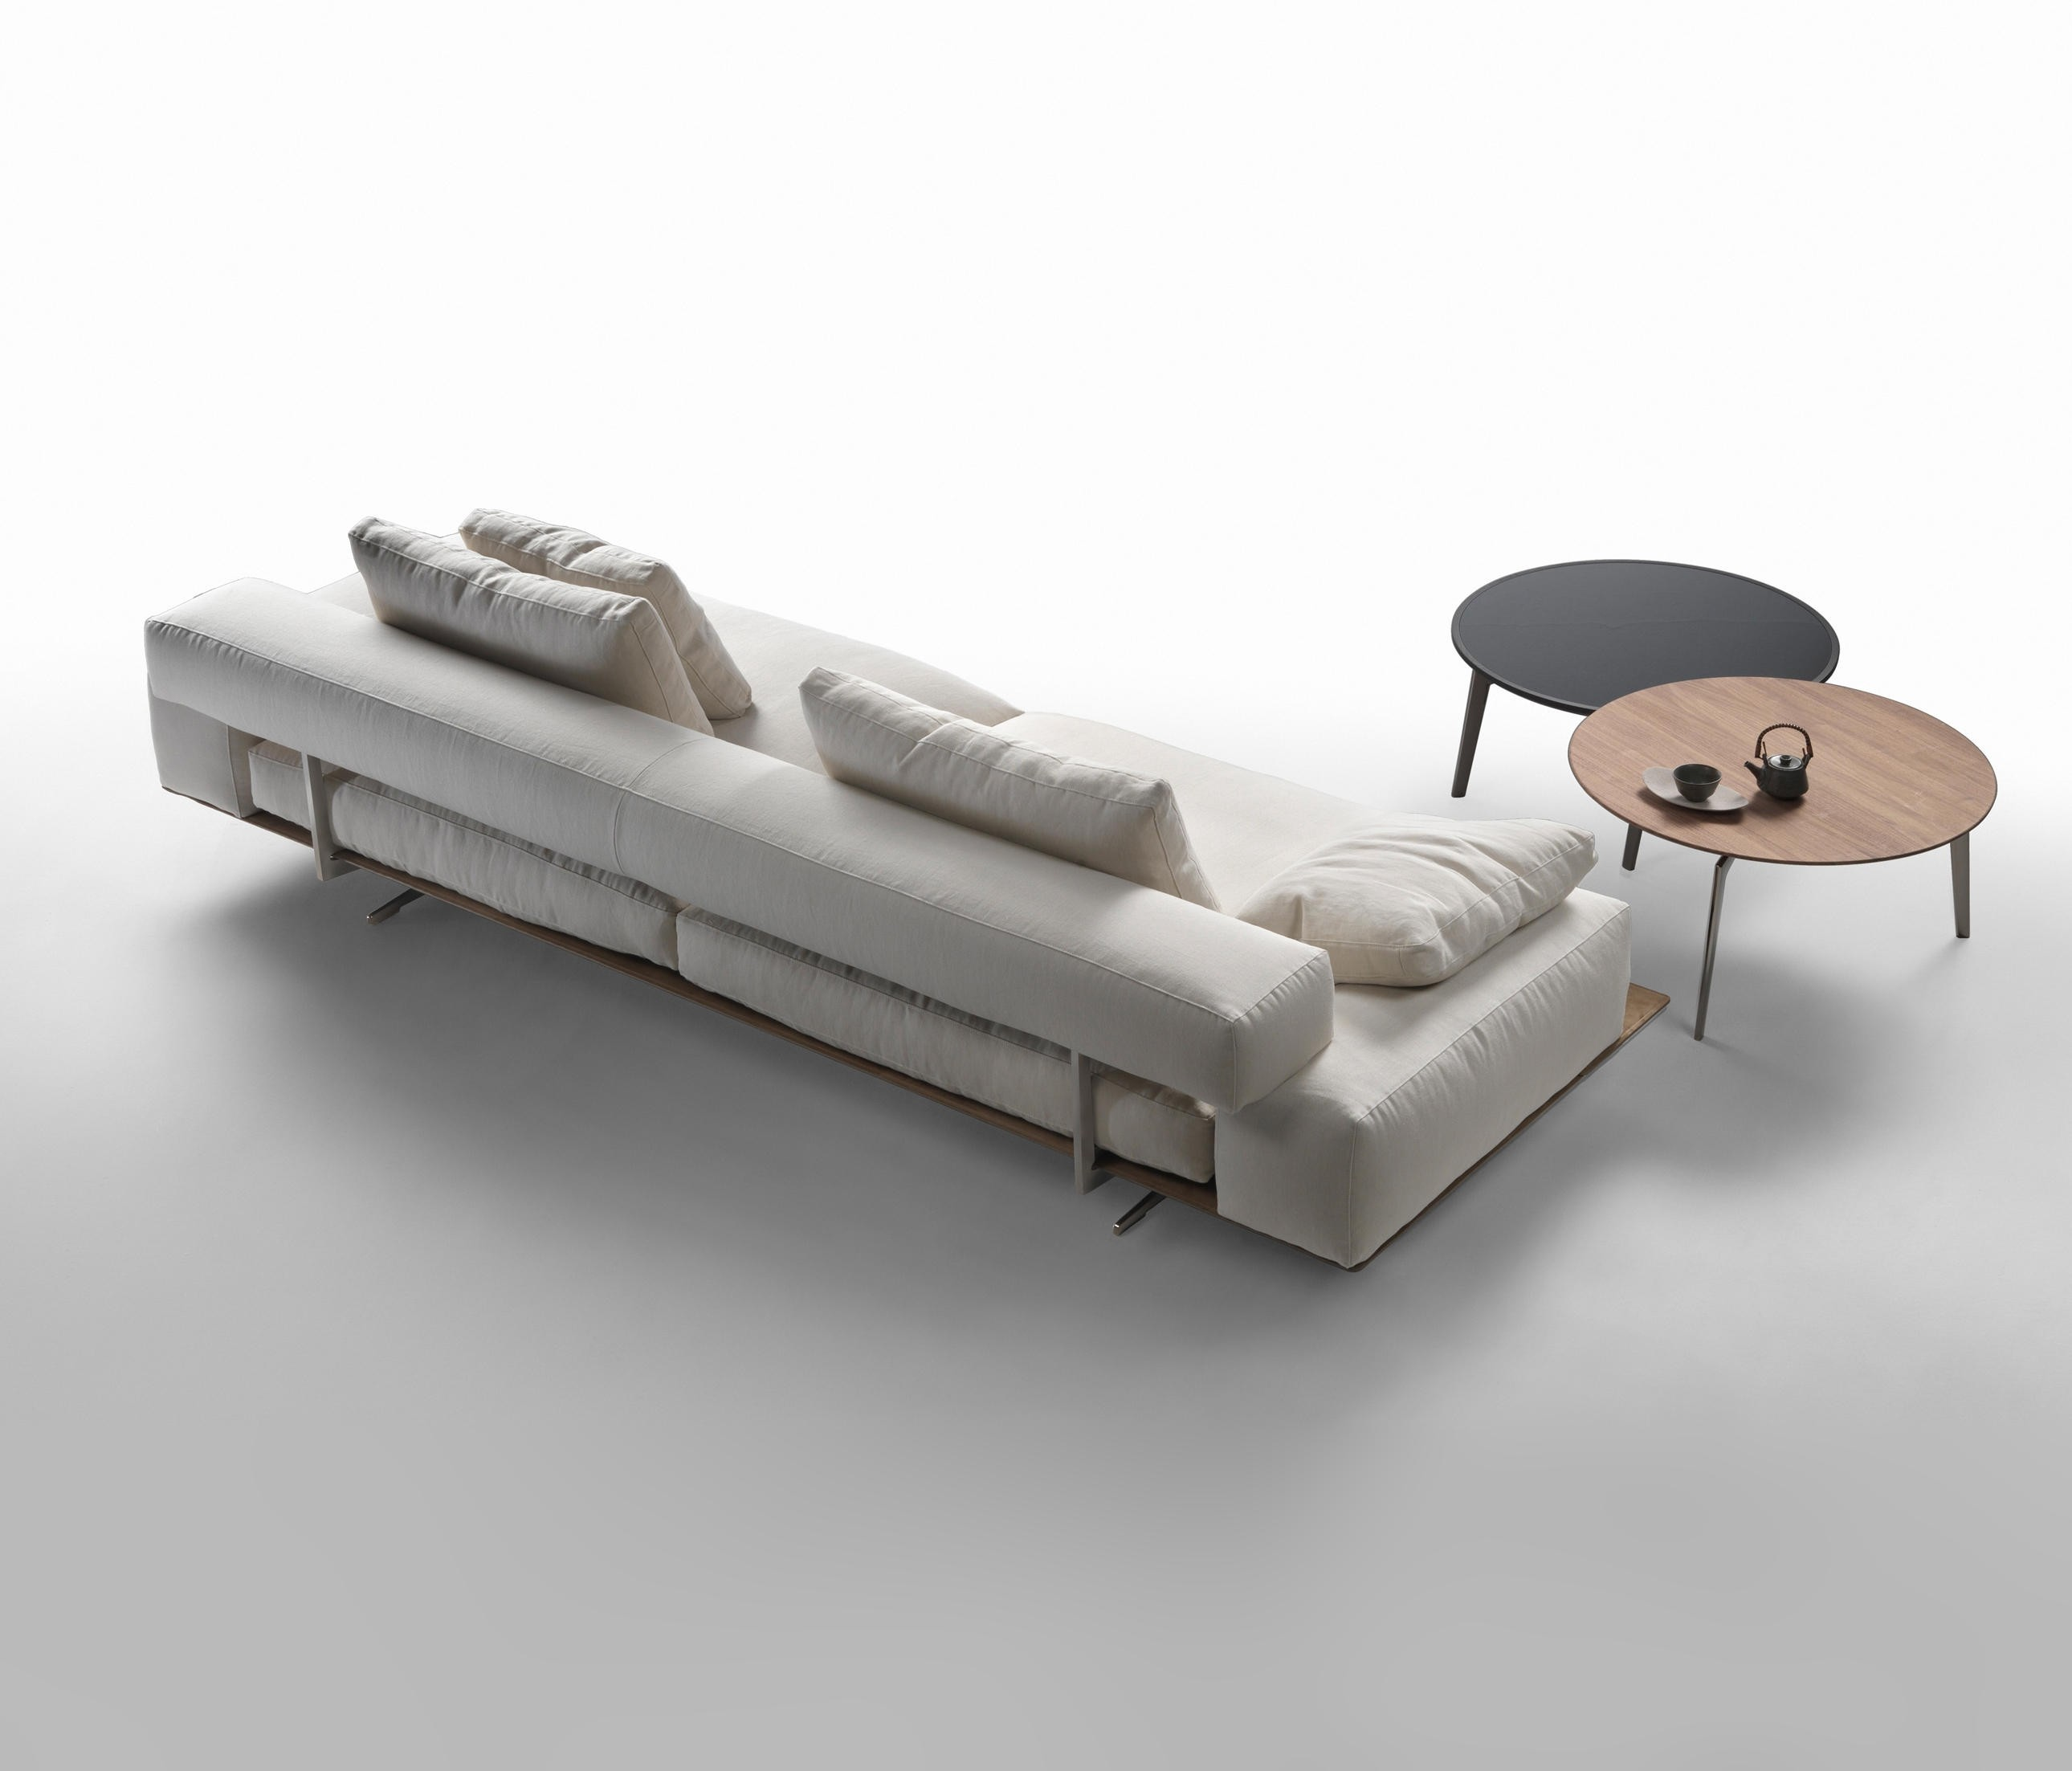 Sofa Helpdesk Flexform Wing Sofa Deplain